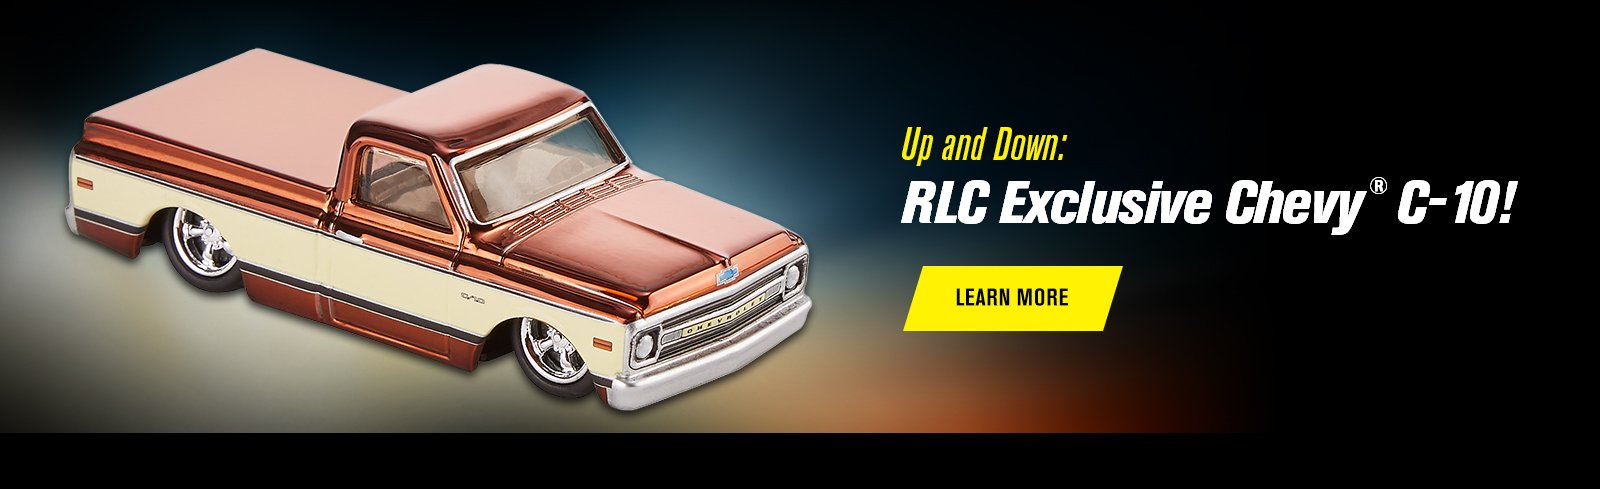 Up and Down: RLC Exclusive 1969 Chevy C-10